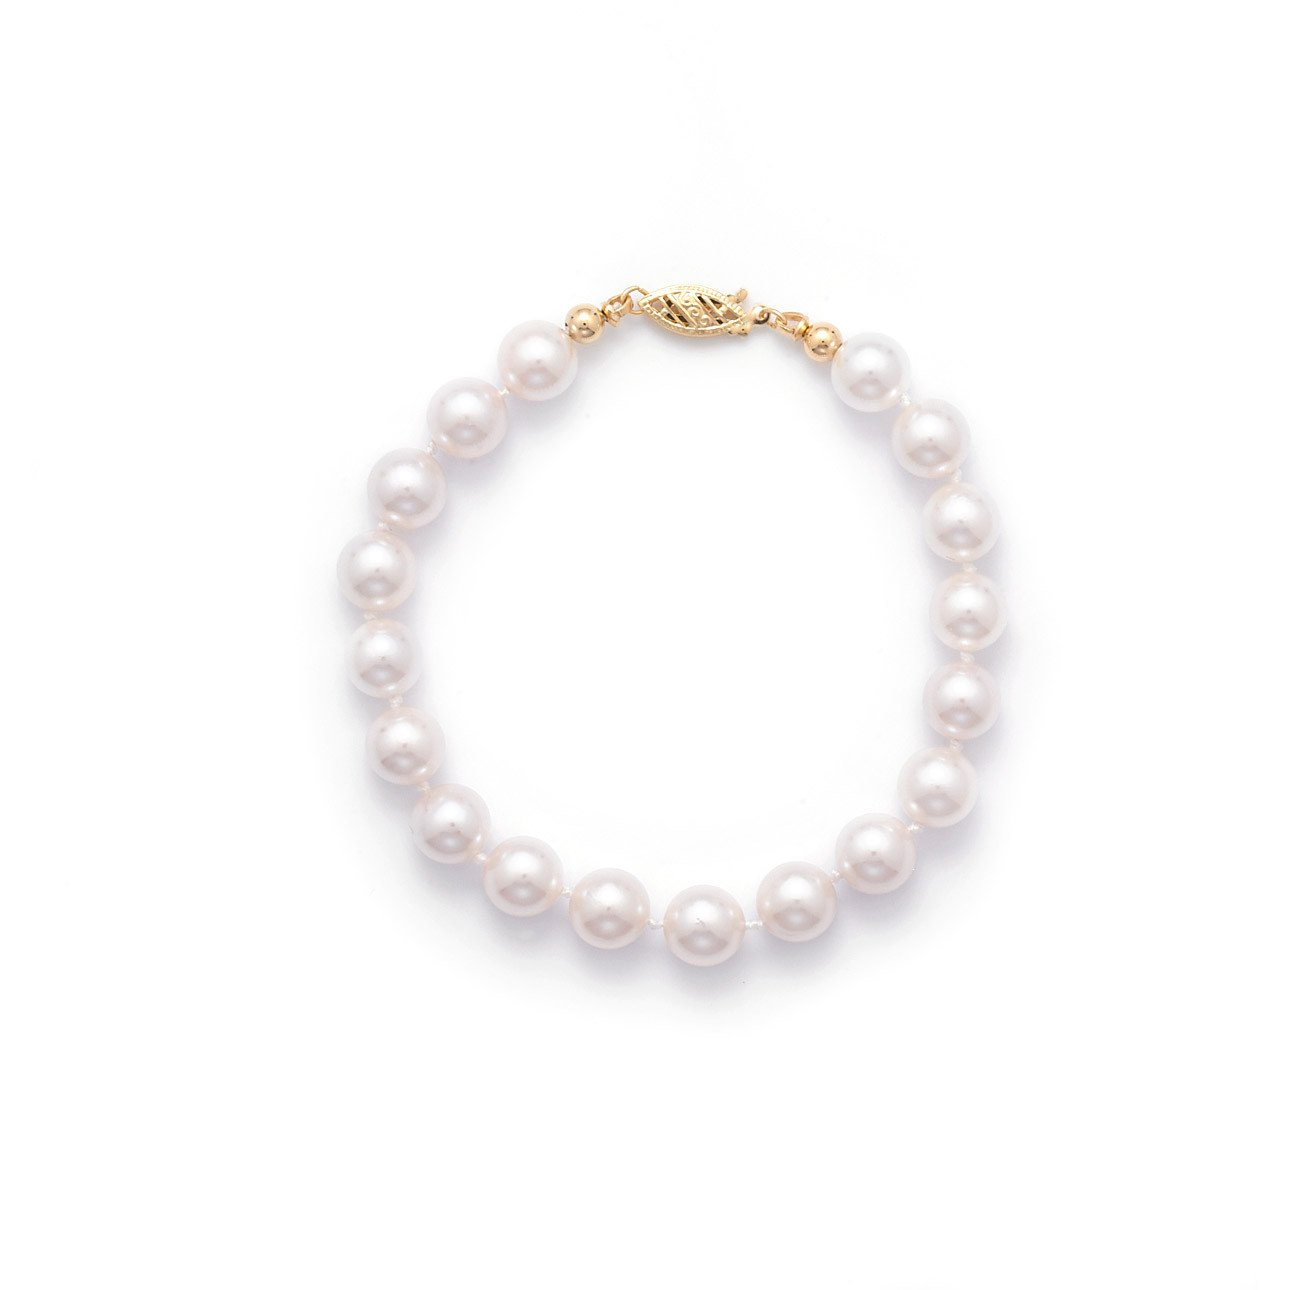 "7"" 7.5-8mm Grade AAA Cultured Akoya Pearl Bracelet"